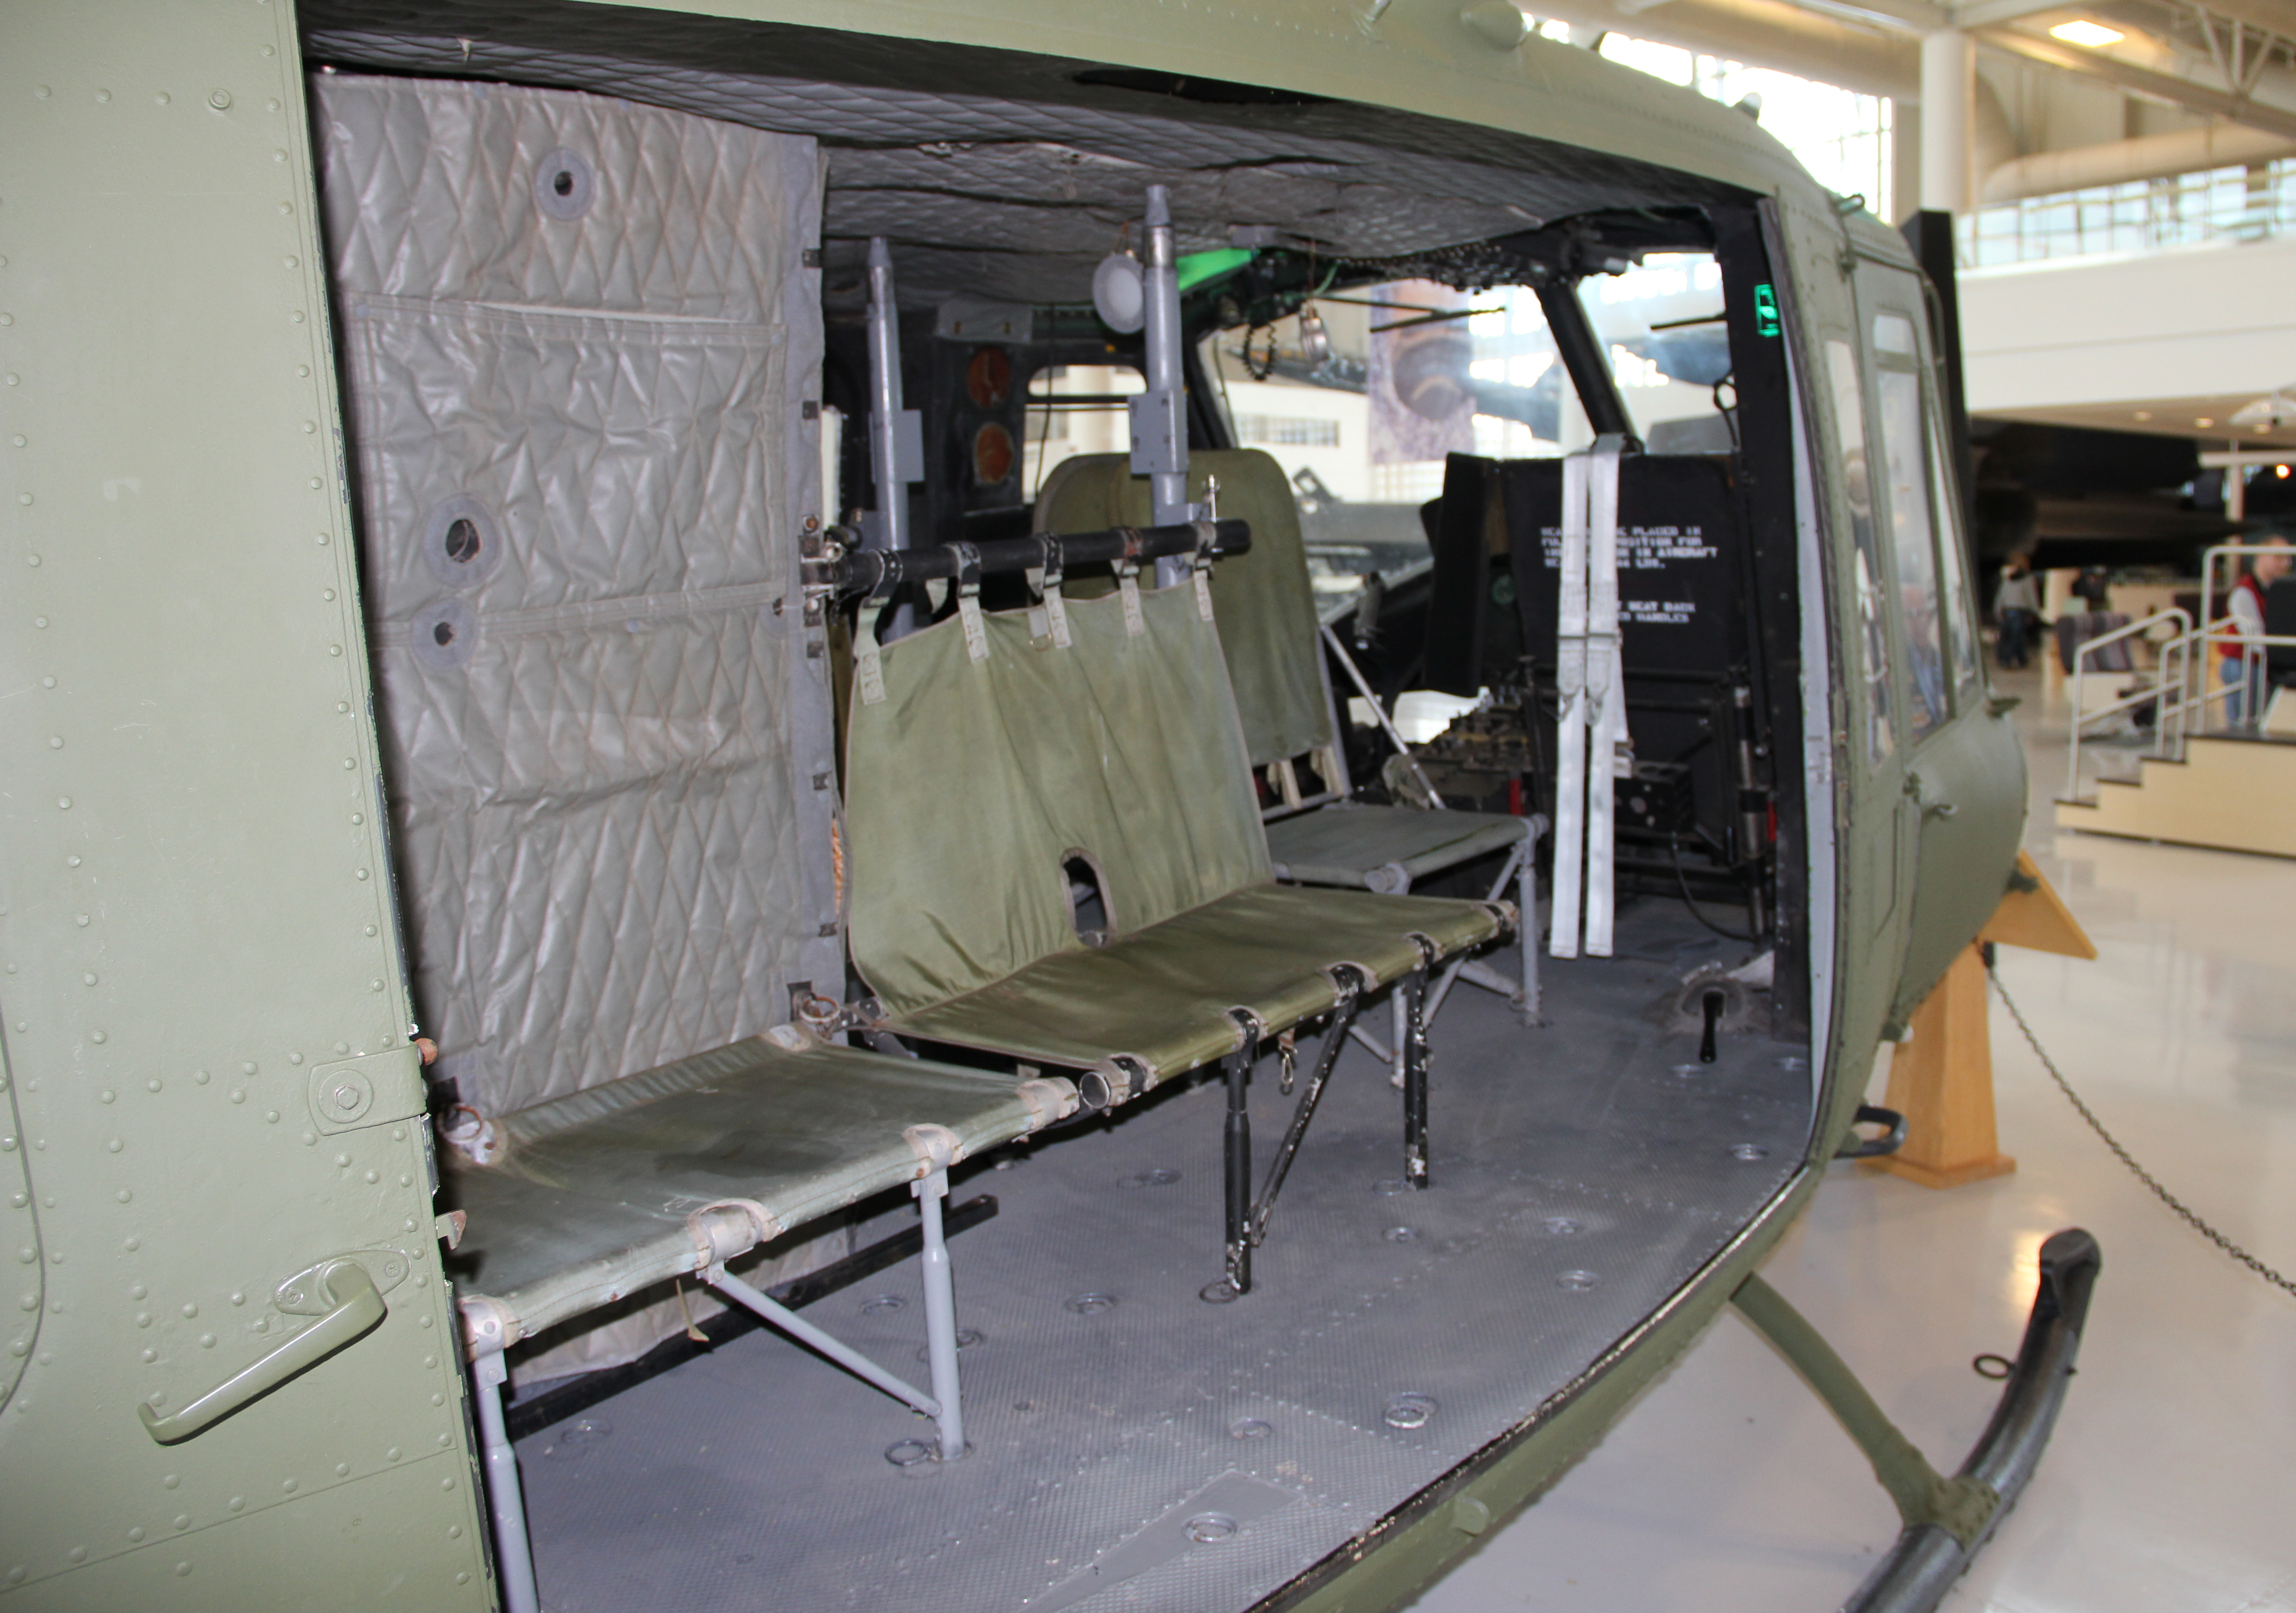 uh 60 helicopter with File Uh 1h Cabin At Evergreen Museum 20111227 on File A U S  Army crew chief scans for possible threats after his UH 60 Black Hawk helicopter departed Al Asad Airbase  Iraq  with Secretary of Defense Robert M  Gates aboard Sept 100901 F DQ383 005 also File Griffin HT1 Helicopter additionally Bell Ah 1w Super Cobra Helicopter likewise Collision Civilian Drone Army Helicopter further Pic Detail.